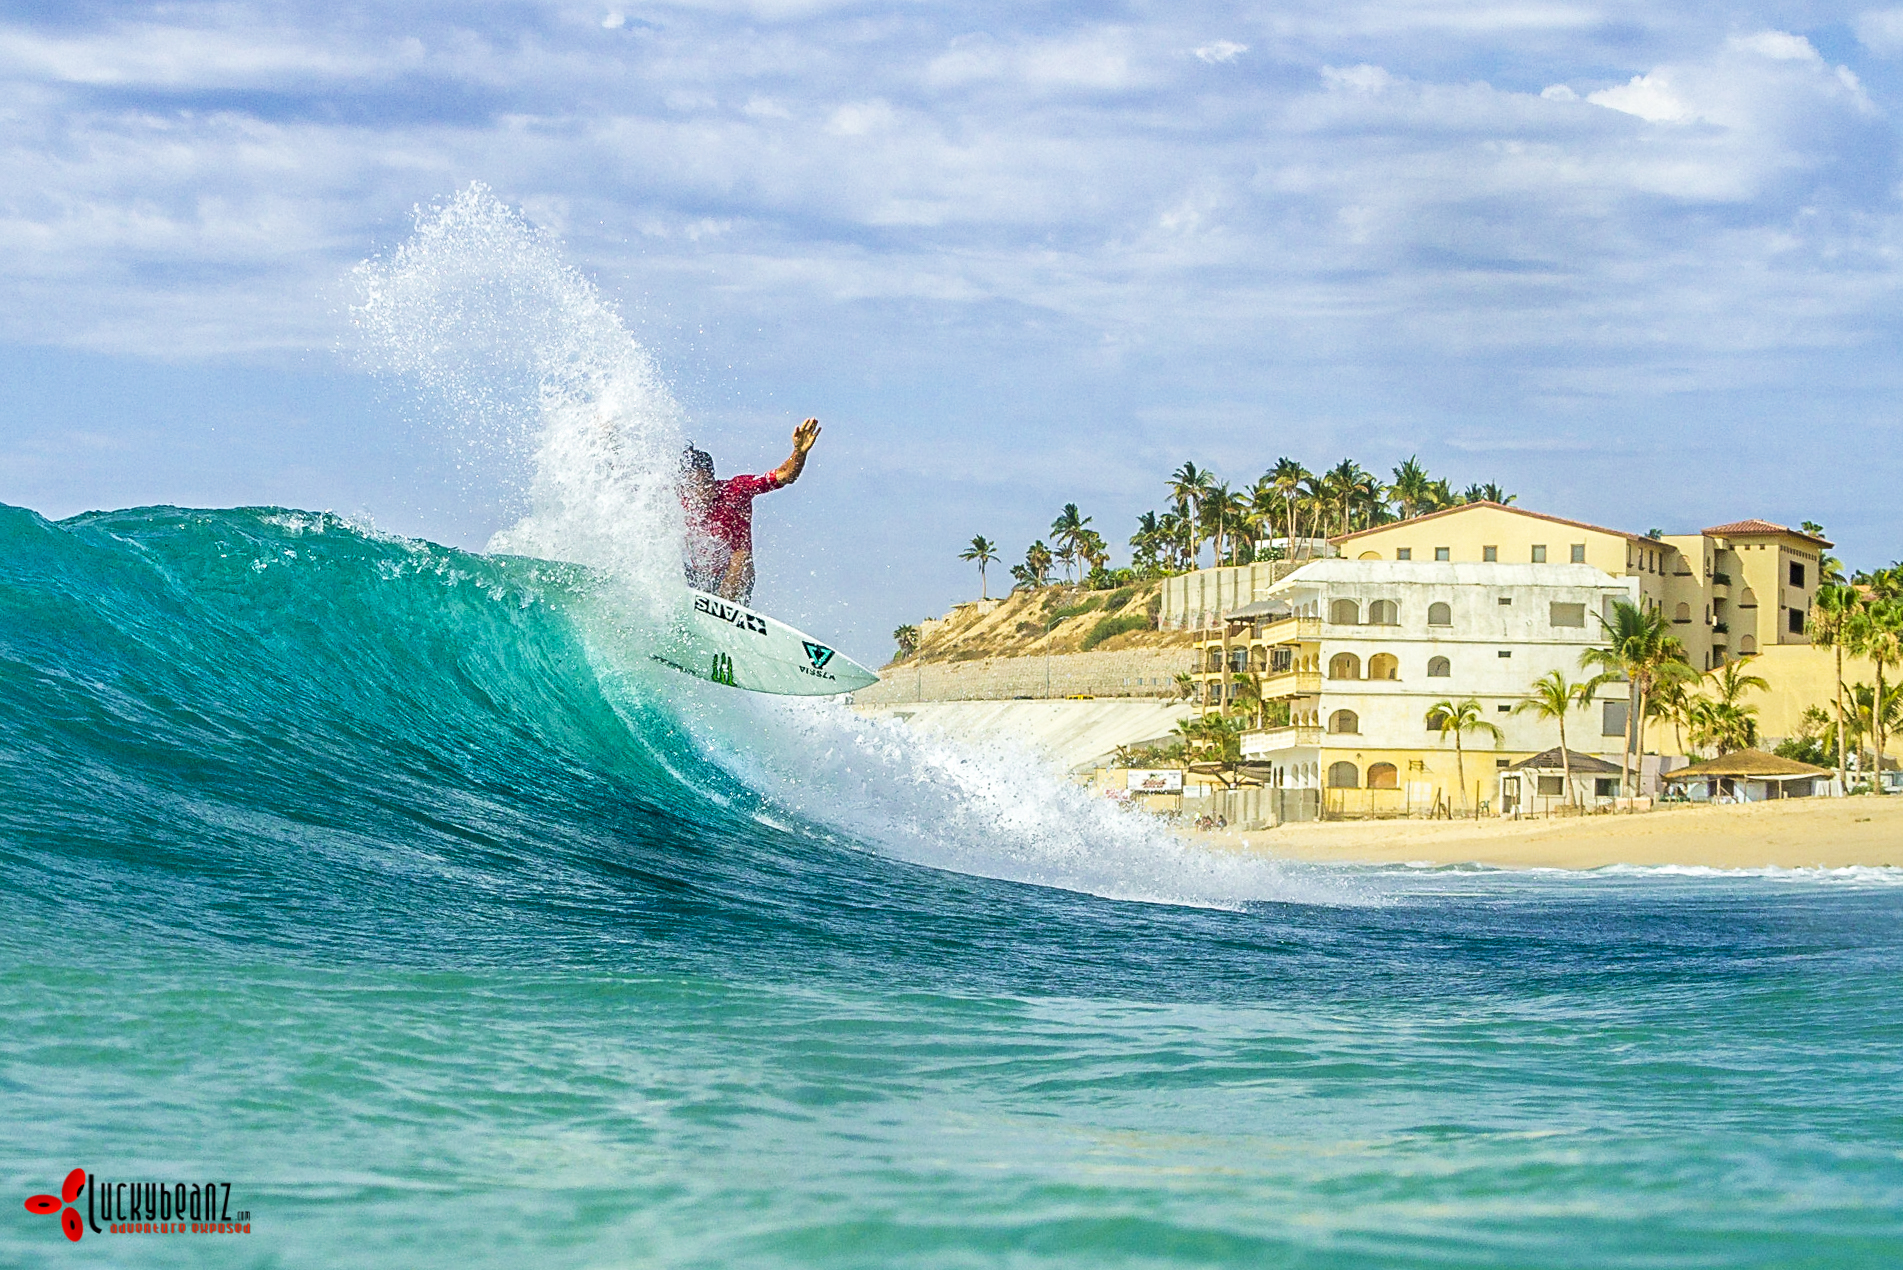 Shooting surf contests in Cabo.